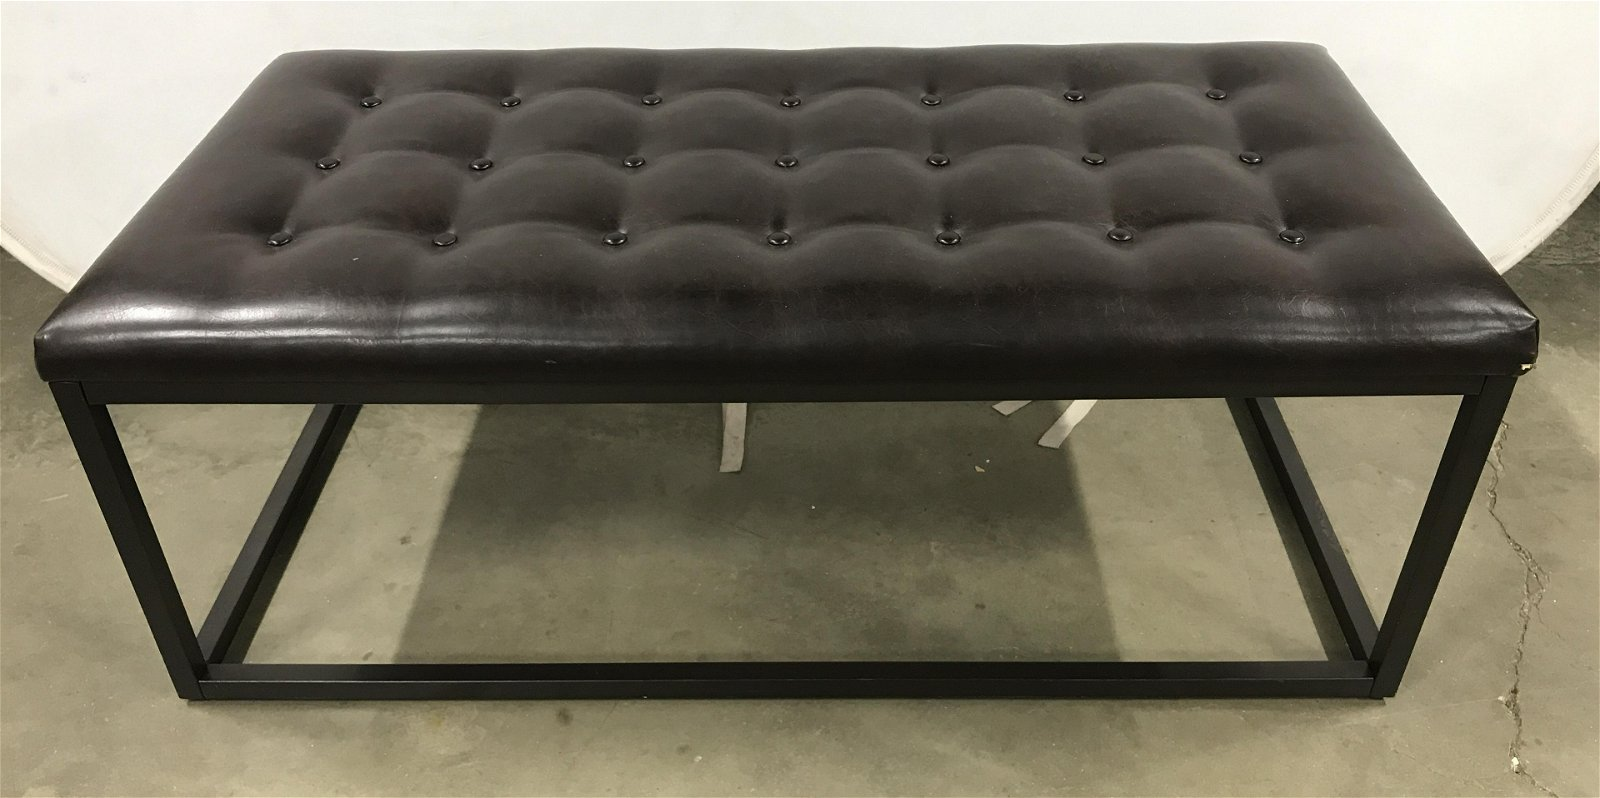 PERMAISURI CO LTD. Tufted Leather Metal Bench